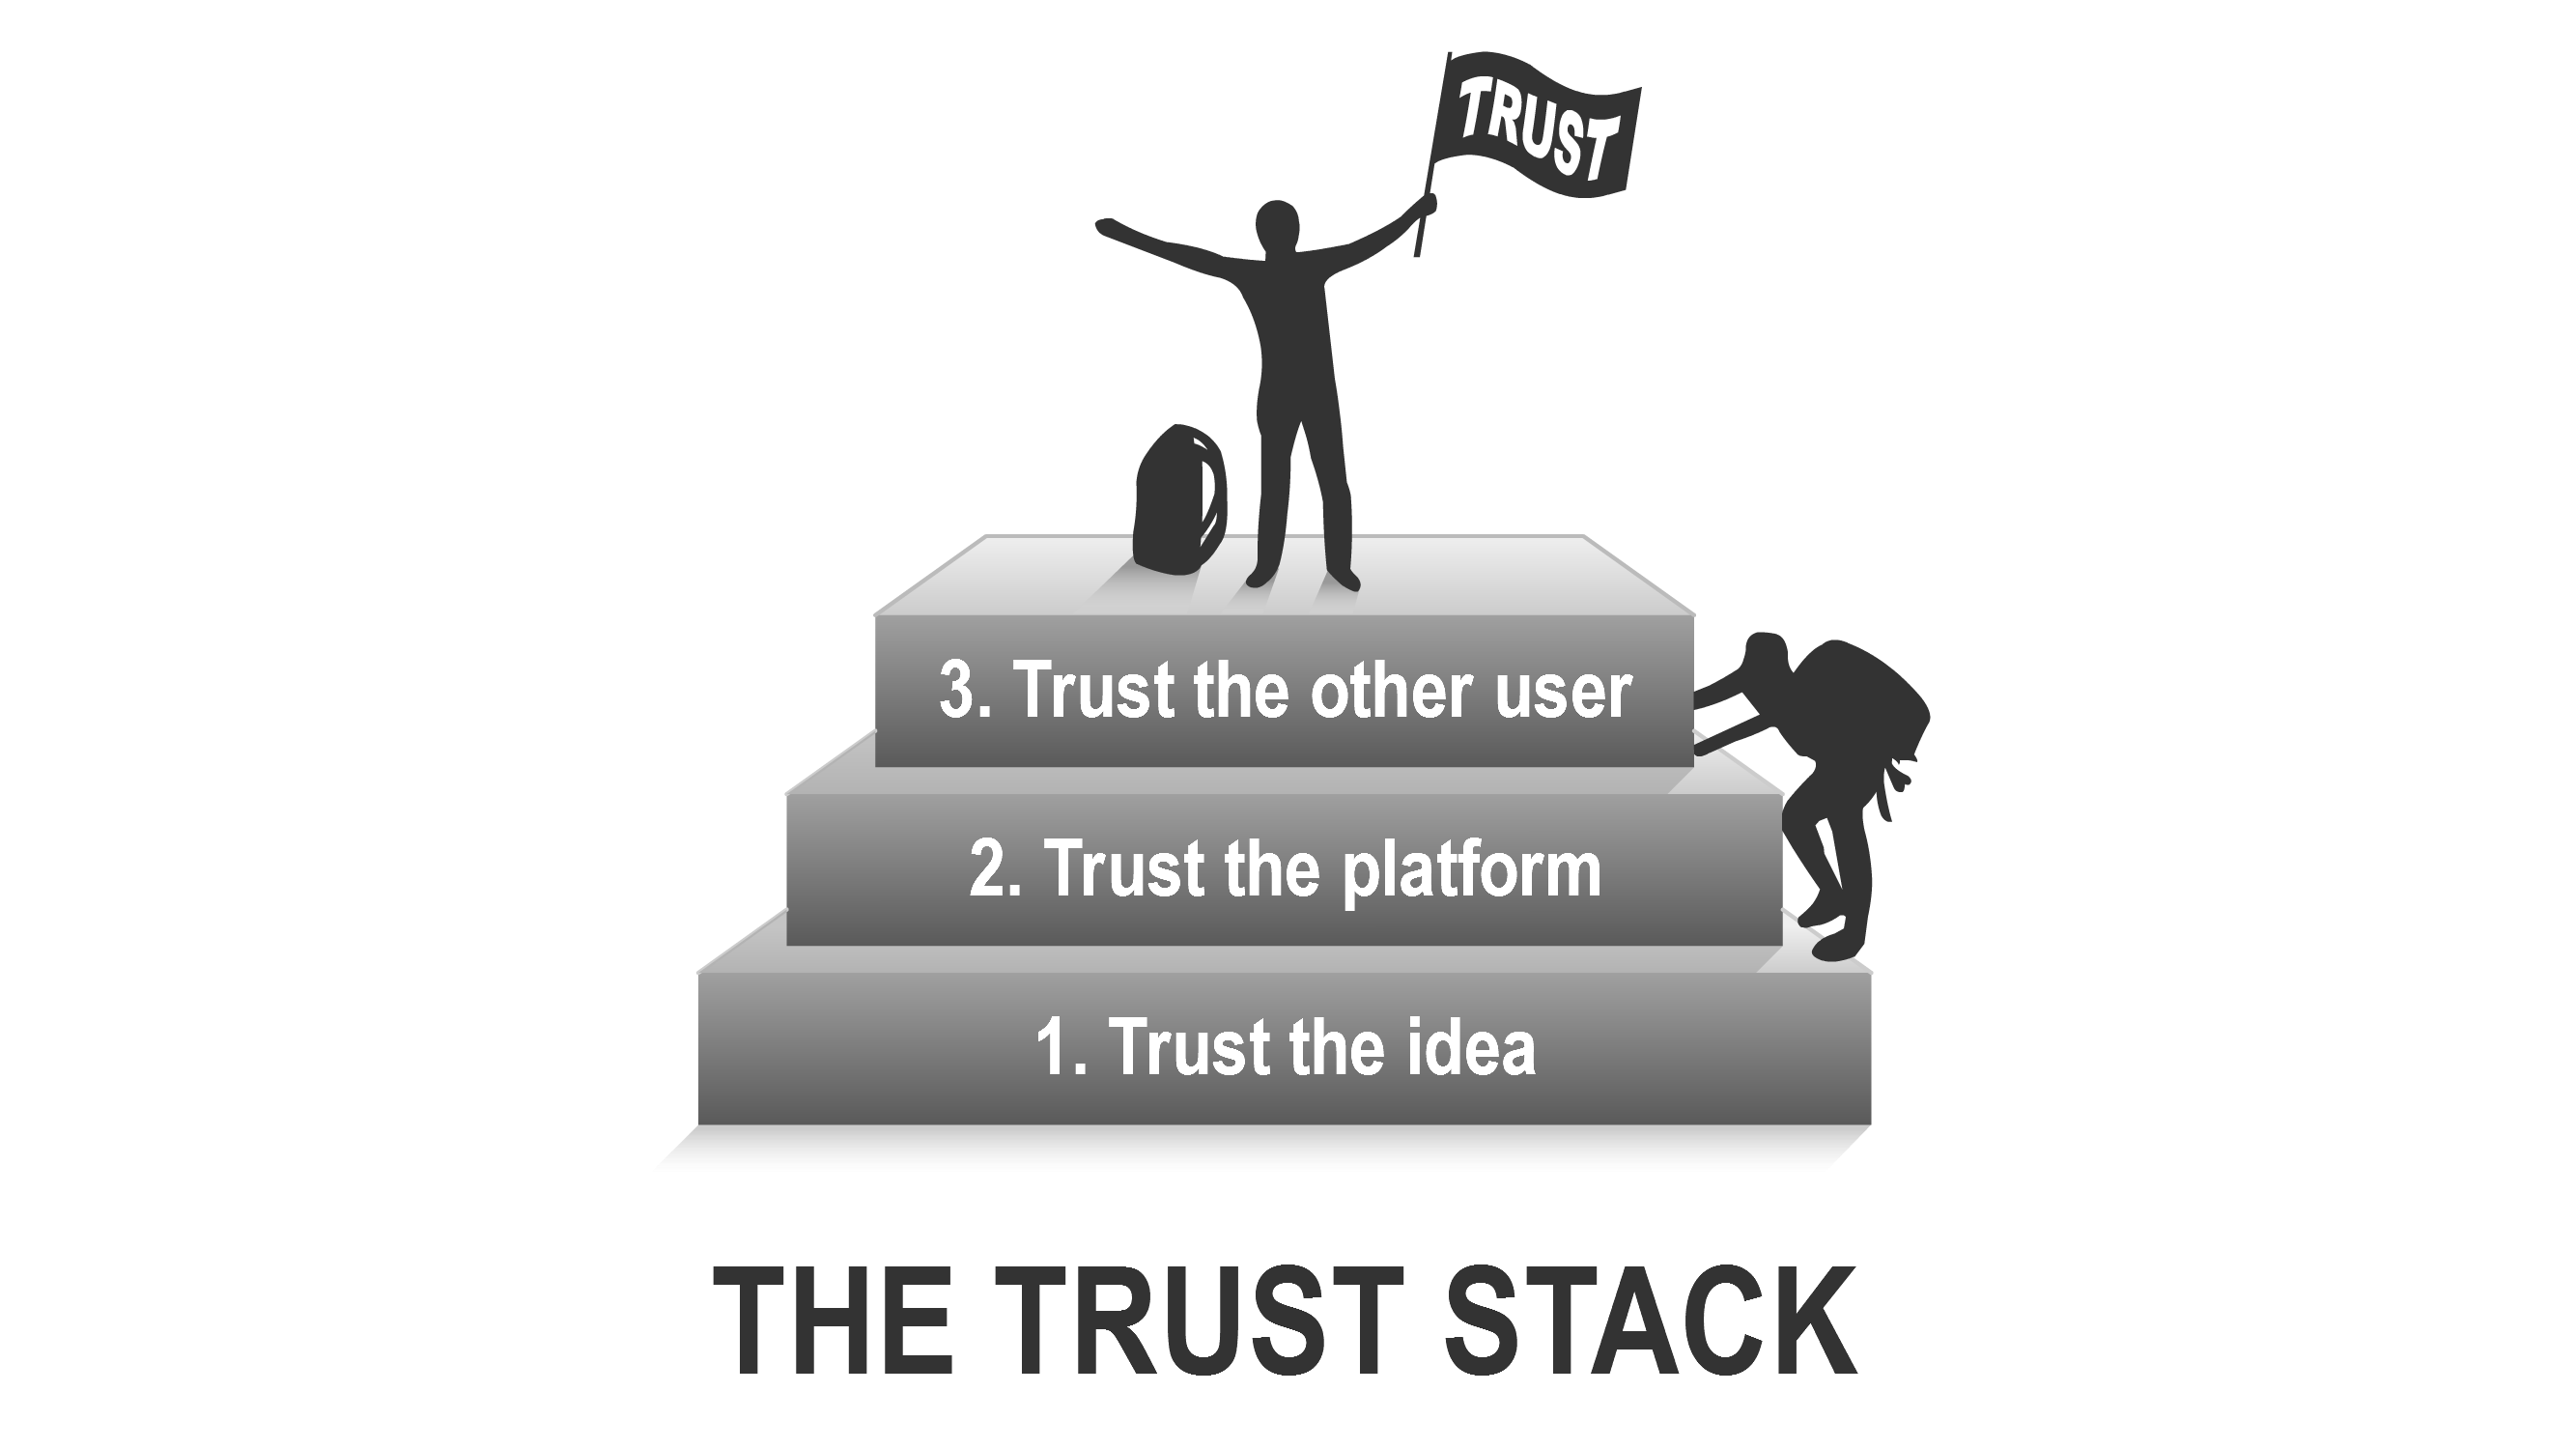 Trust stack; 1st trust the idea, 2nd trust the platform, 3th trust the other user